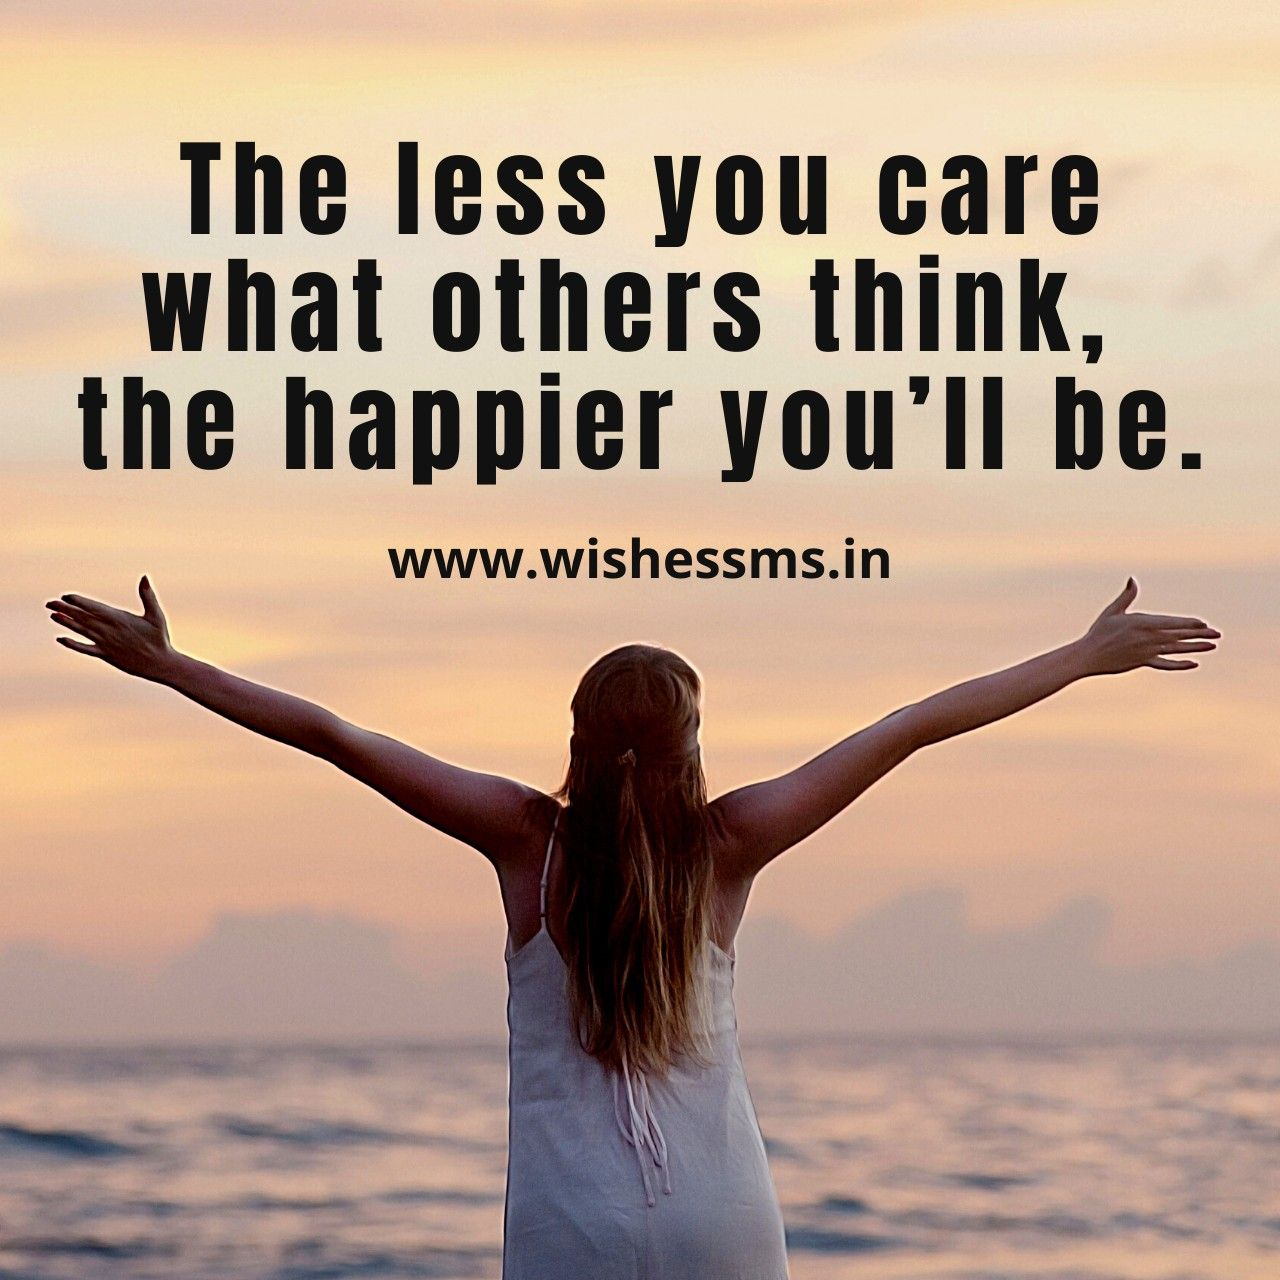 Quotes On Life In English Inspirational Motivational Quotes Inspirational Quotes Pictures Motivational Quotes For Life